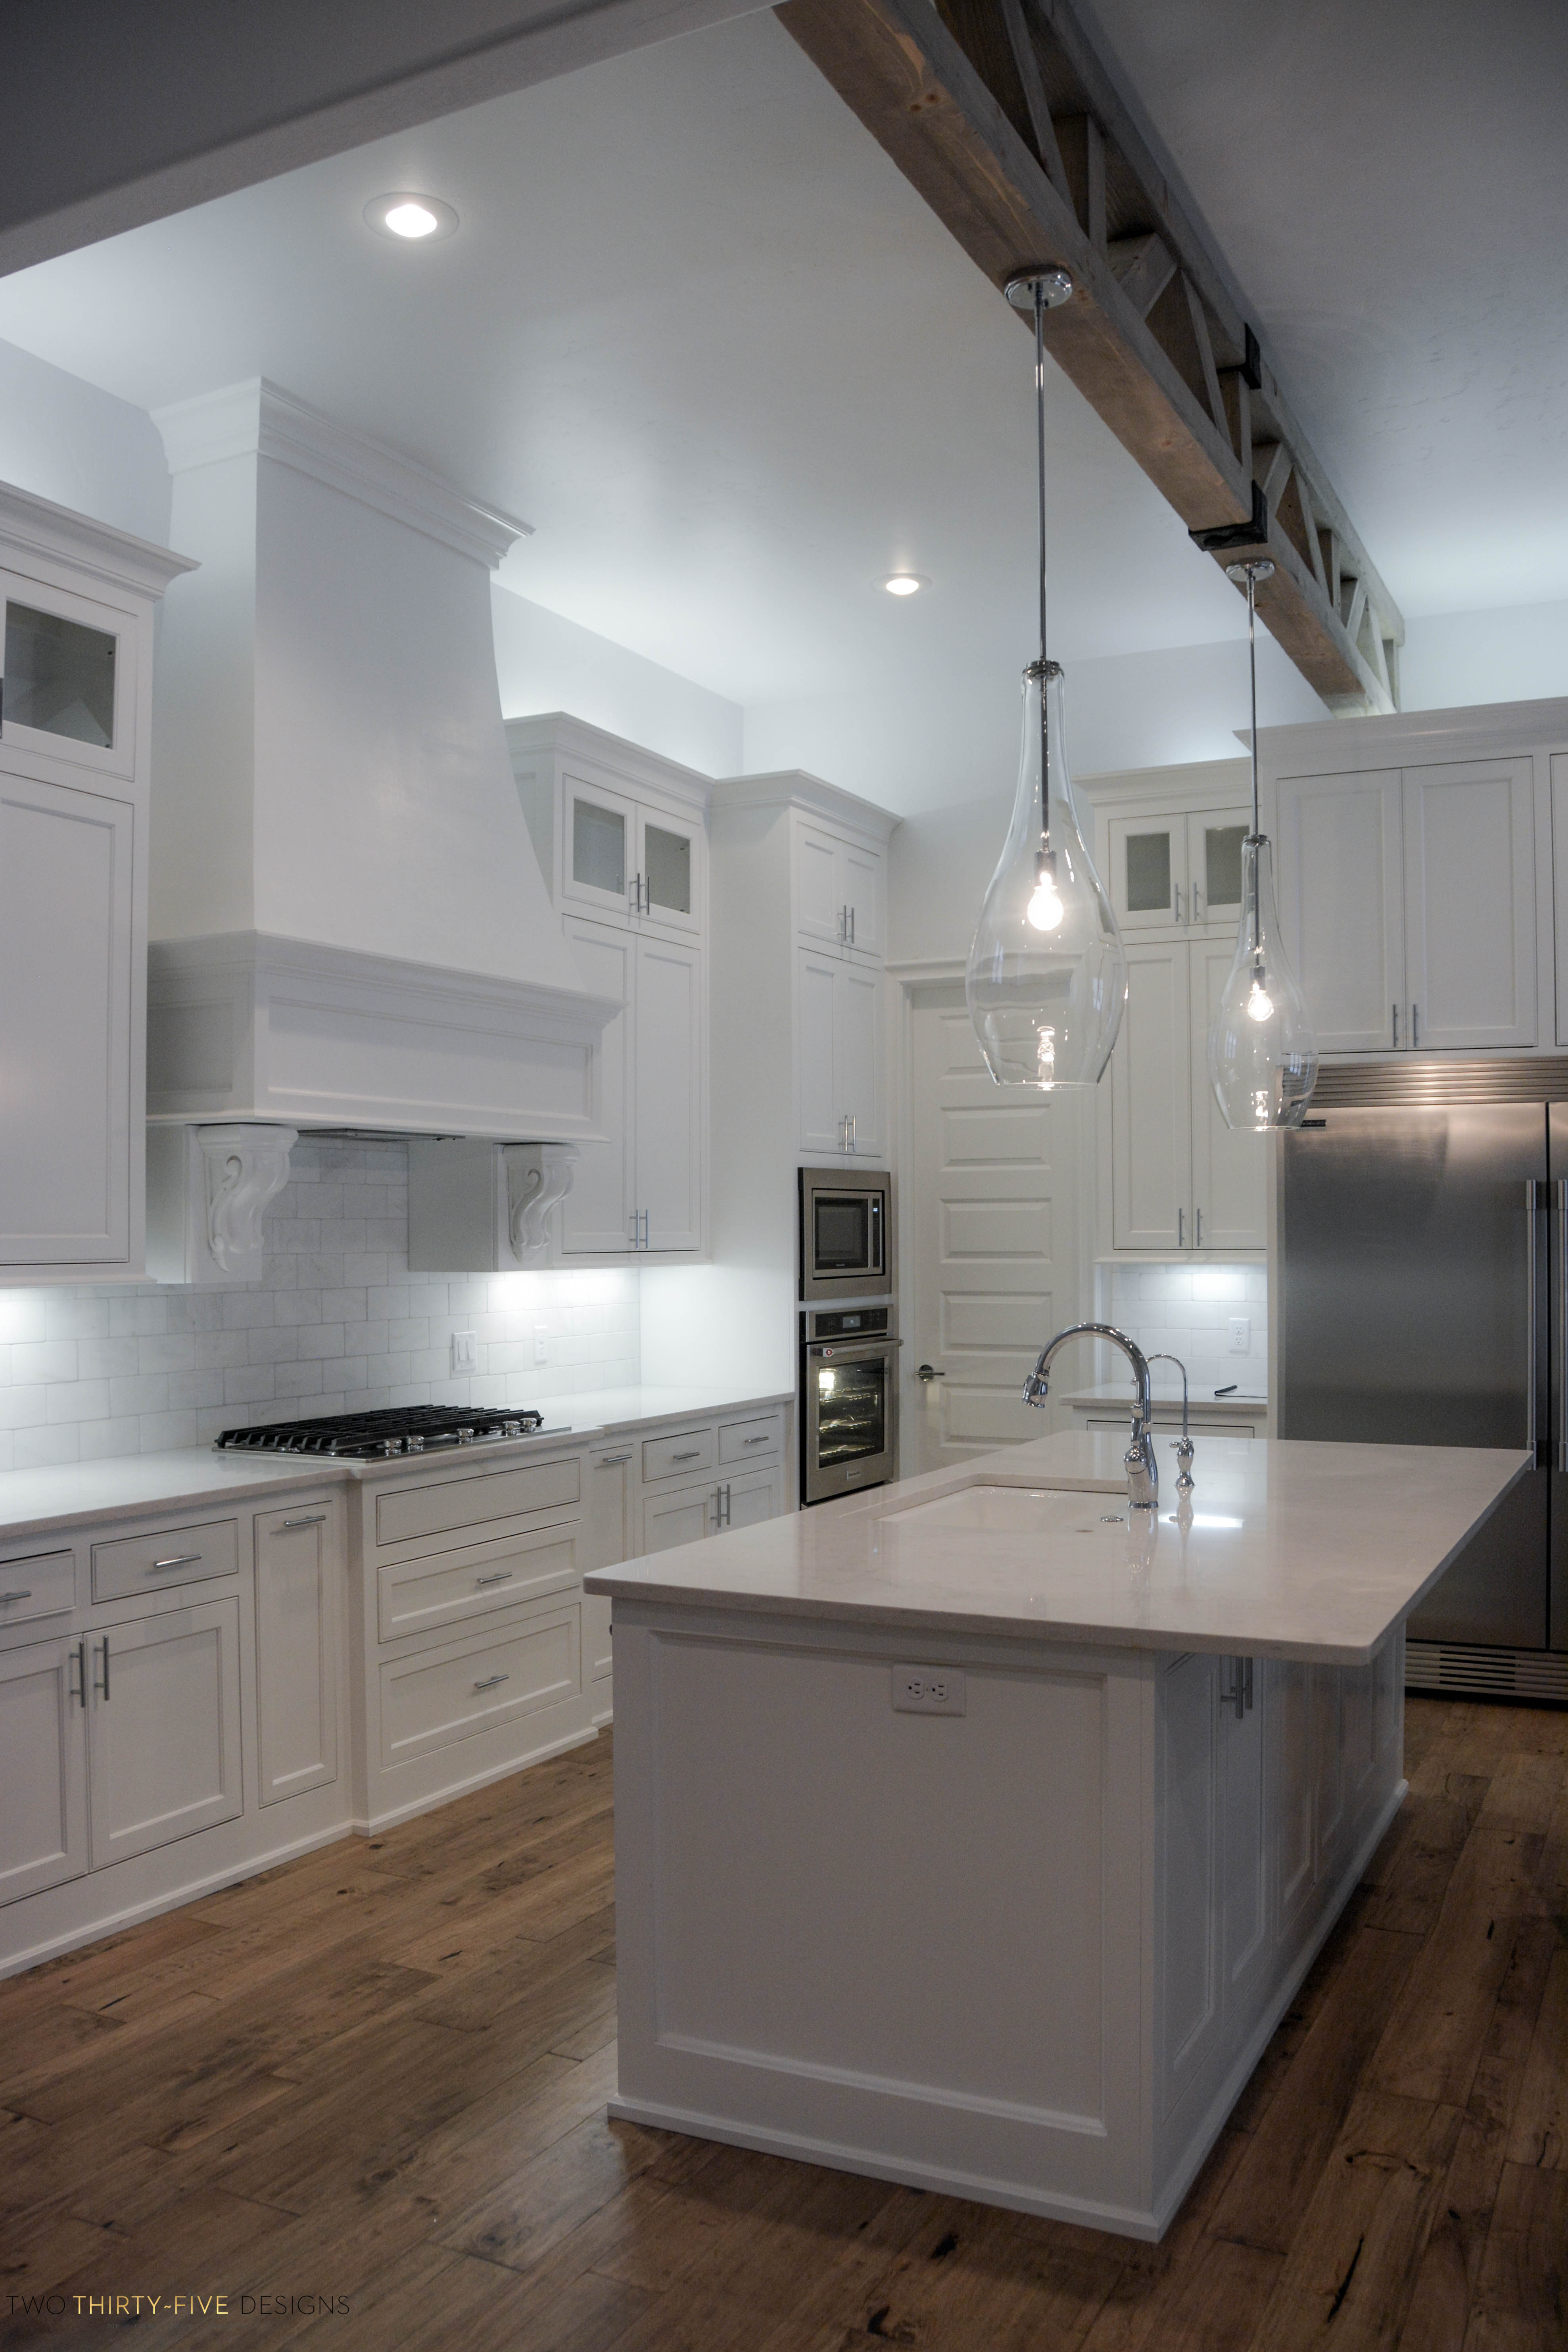 Simple-White-Kitchen-5-of-10 Simple Home Floor Designs on simple home kitchen designs, simple home building designs, simple home architecture, simple home furniture, simple home exterior designs, simple home lighting, simple home bathroom designs, simple business card designs, simple home bar designs, simple home swimming pools,